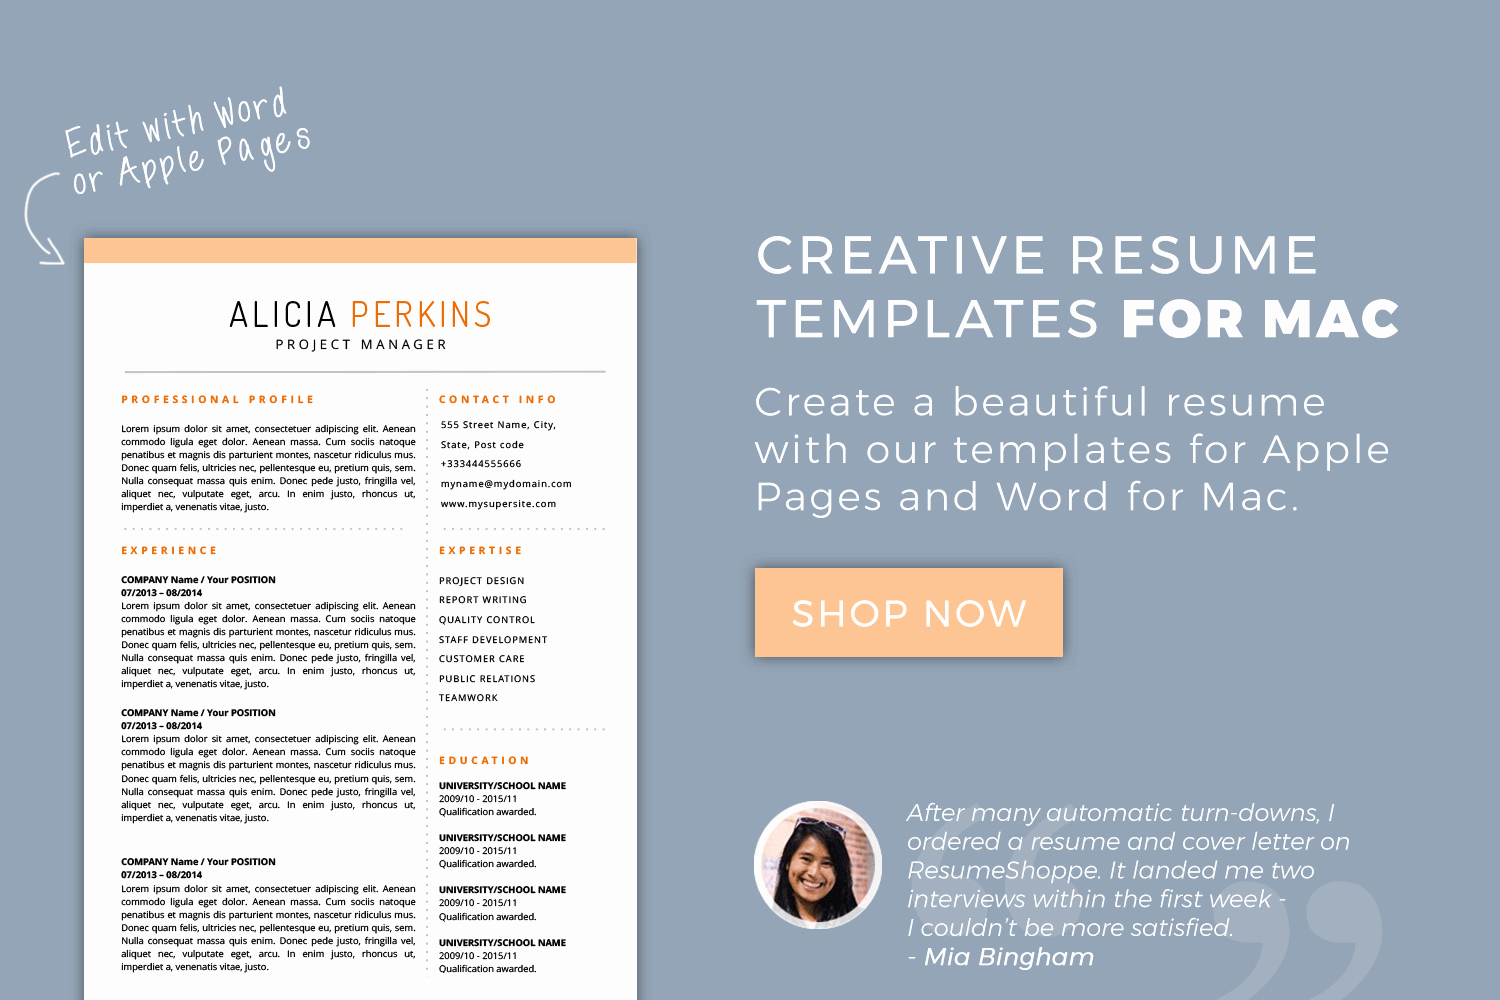 Resume Templates for Mac Inspirational Resume Templates for Mac Word & Apple Pages Instant